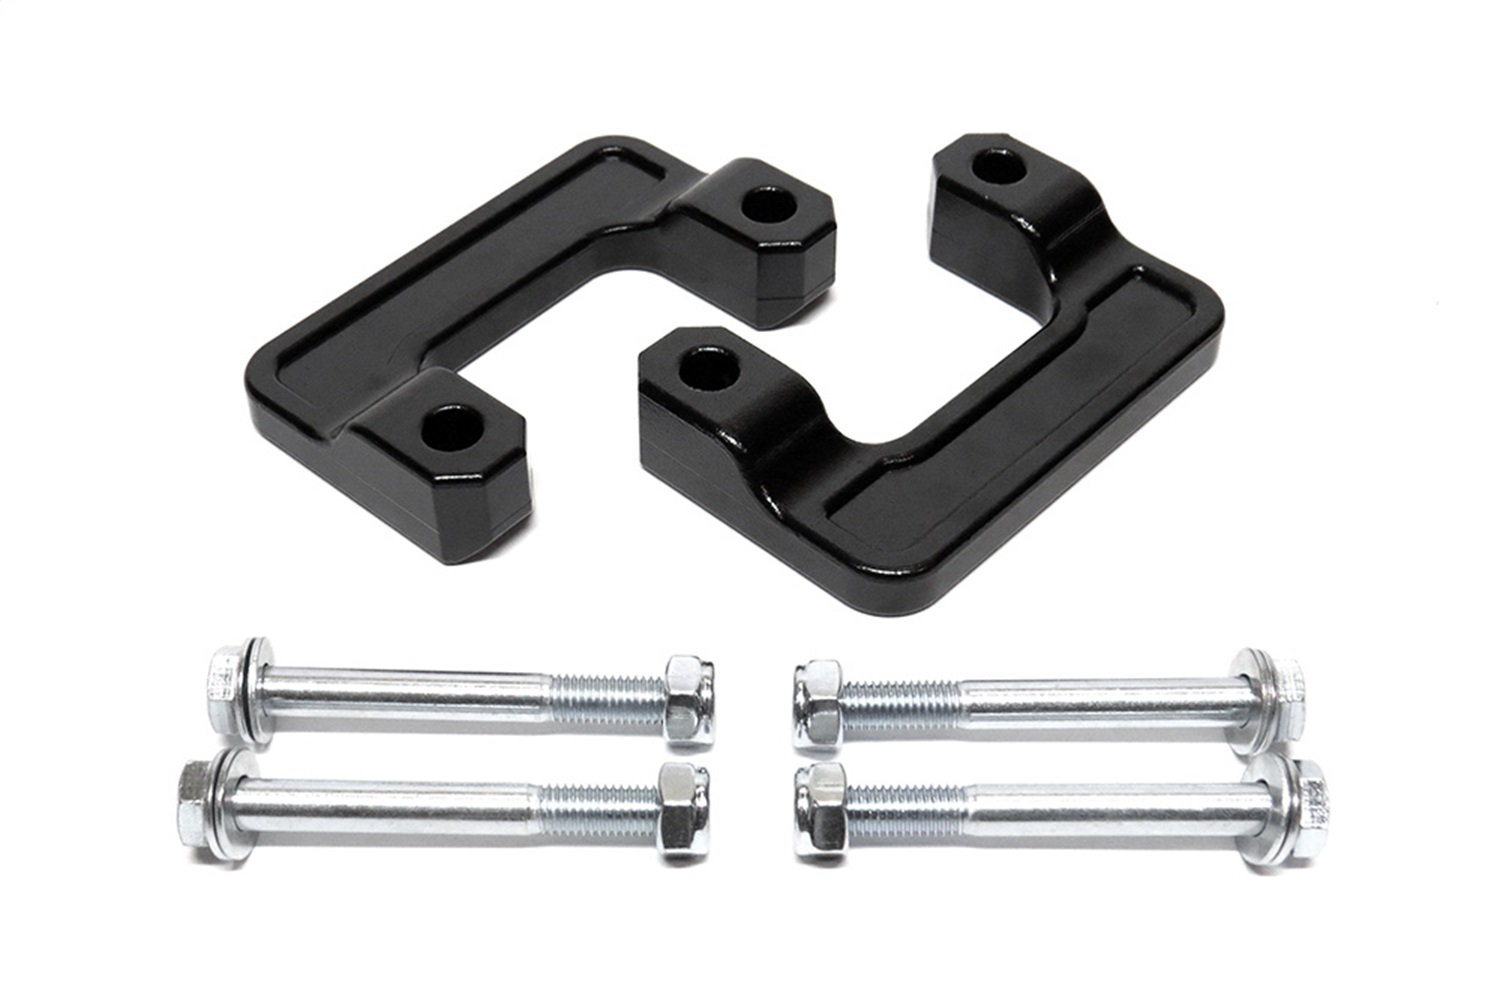 Iconic Accessories 611-1802 2 in. Leveling Lift Kit